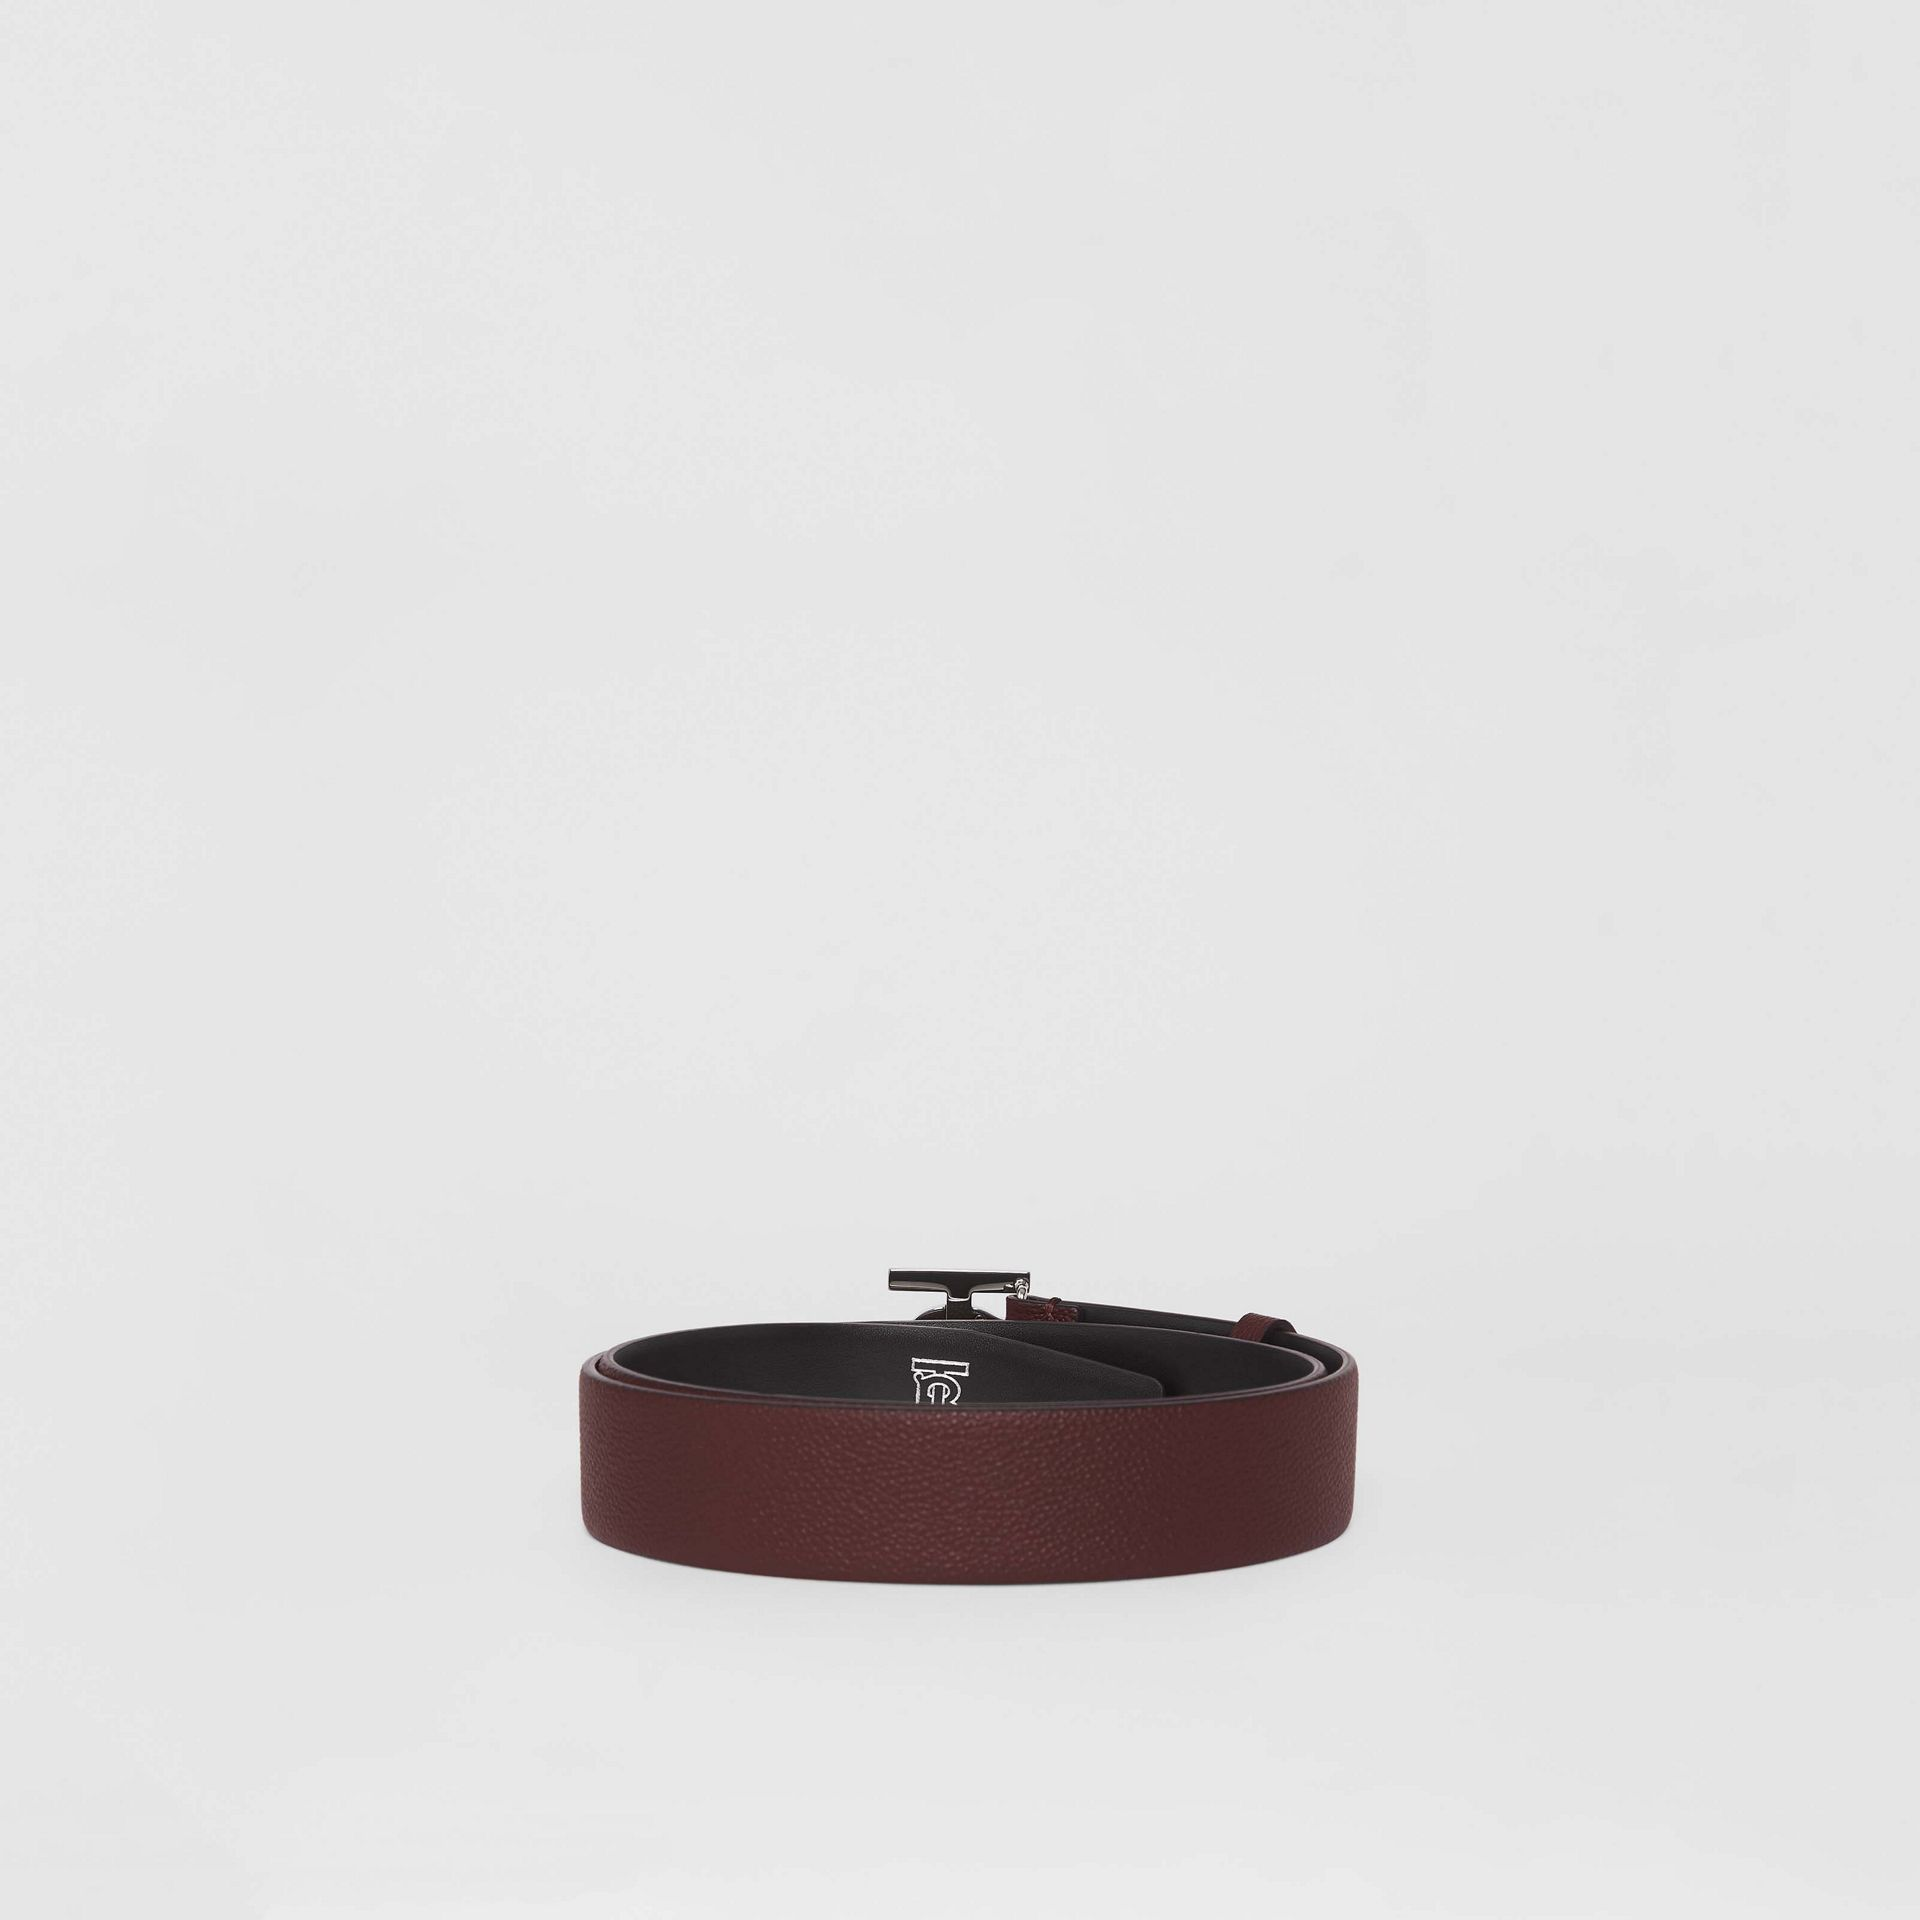 Monogram Motif Leather Belt in Oxblood - Men | Burberry Canada - gallery image 4